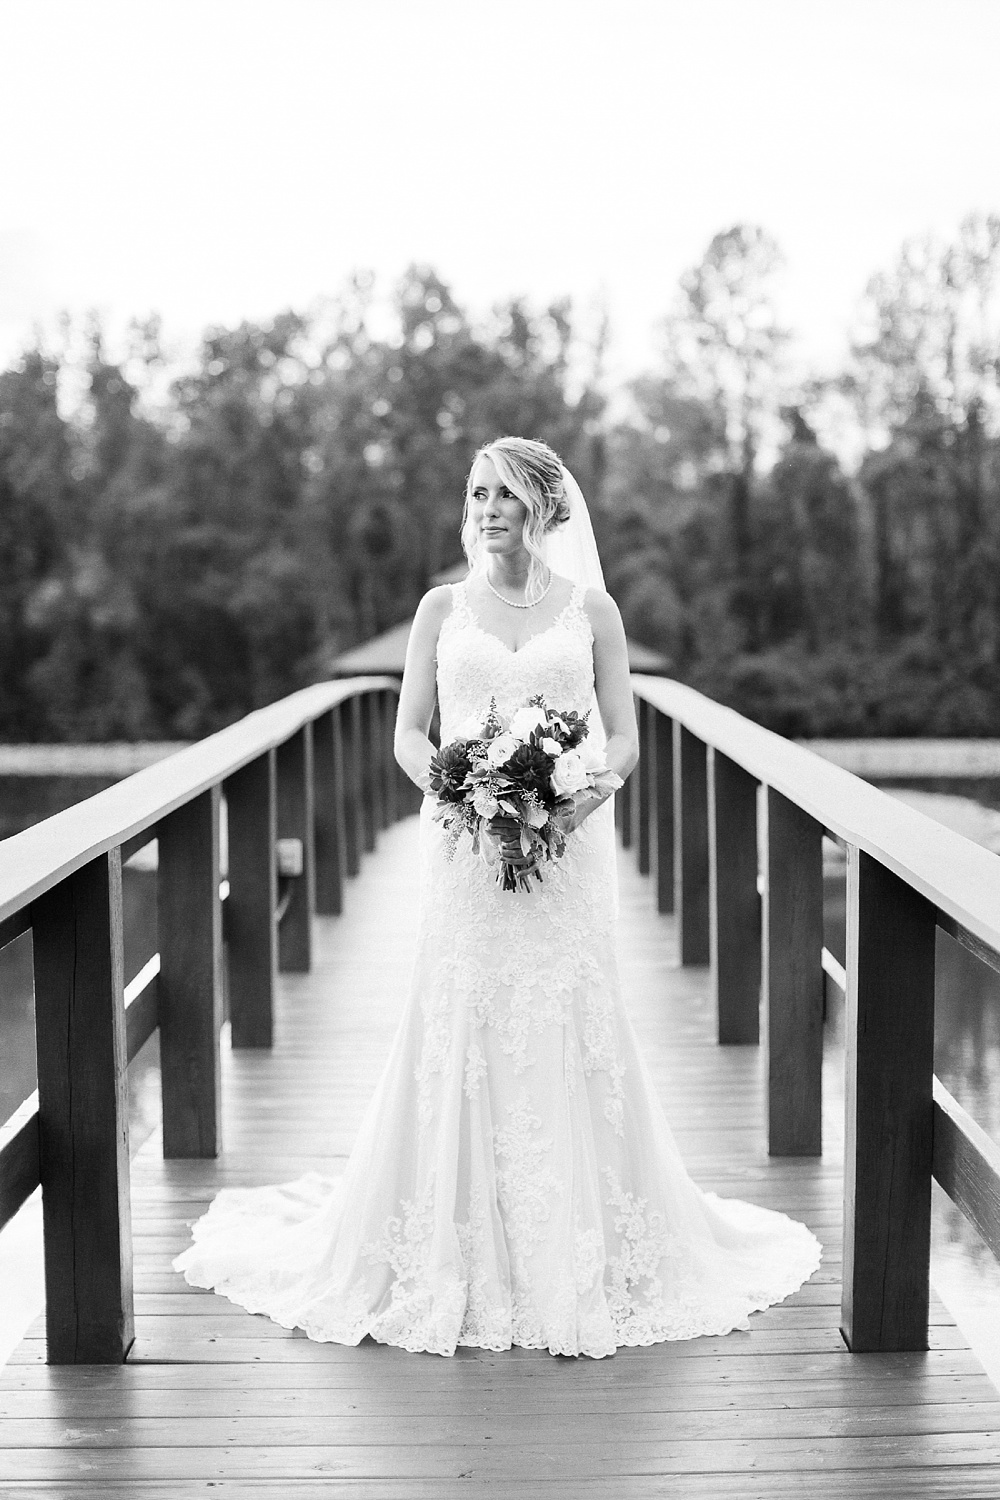 bridal portrait on a wooden bridge